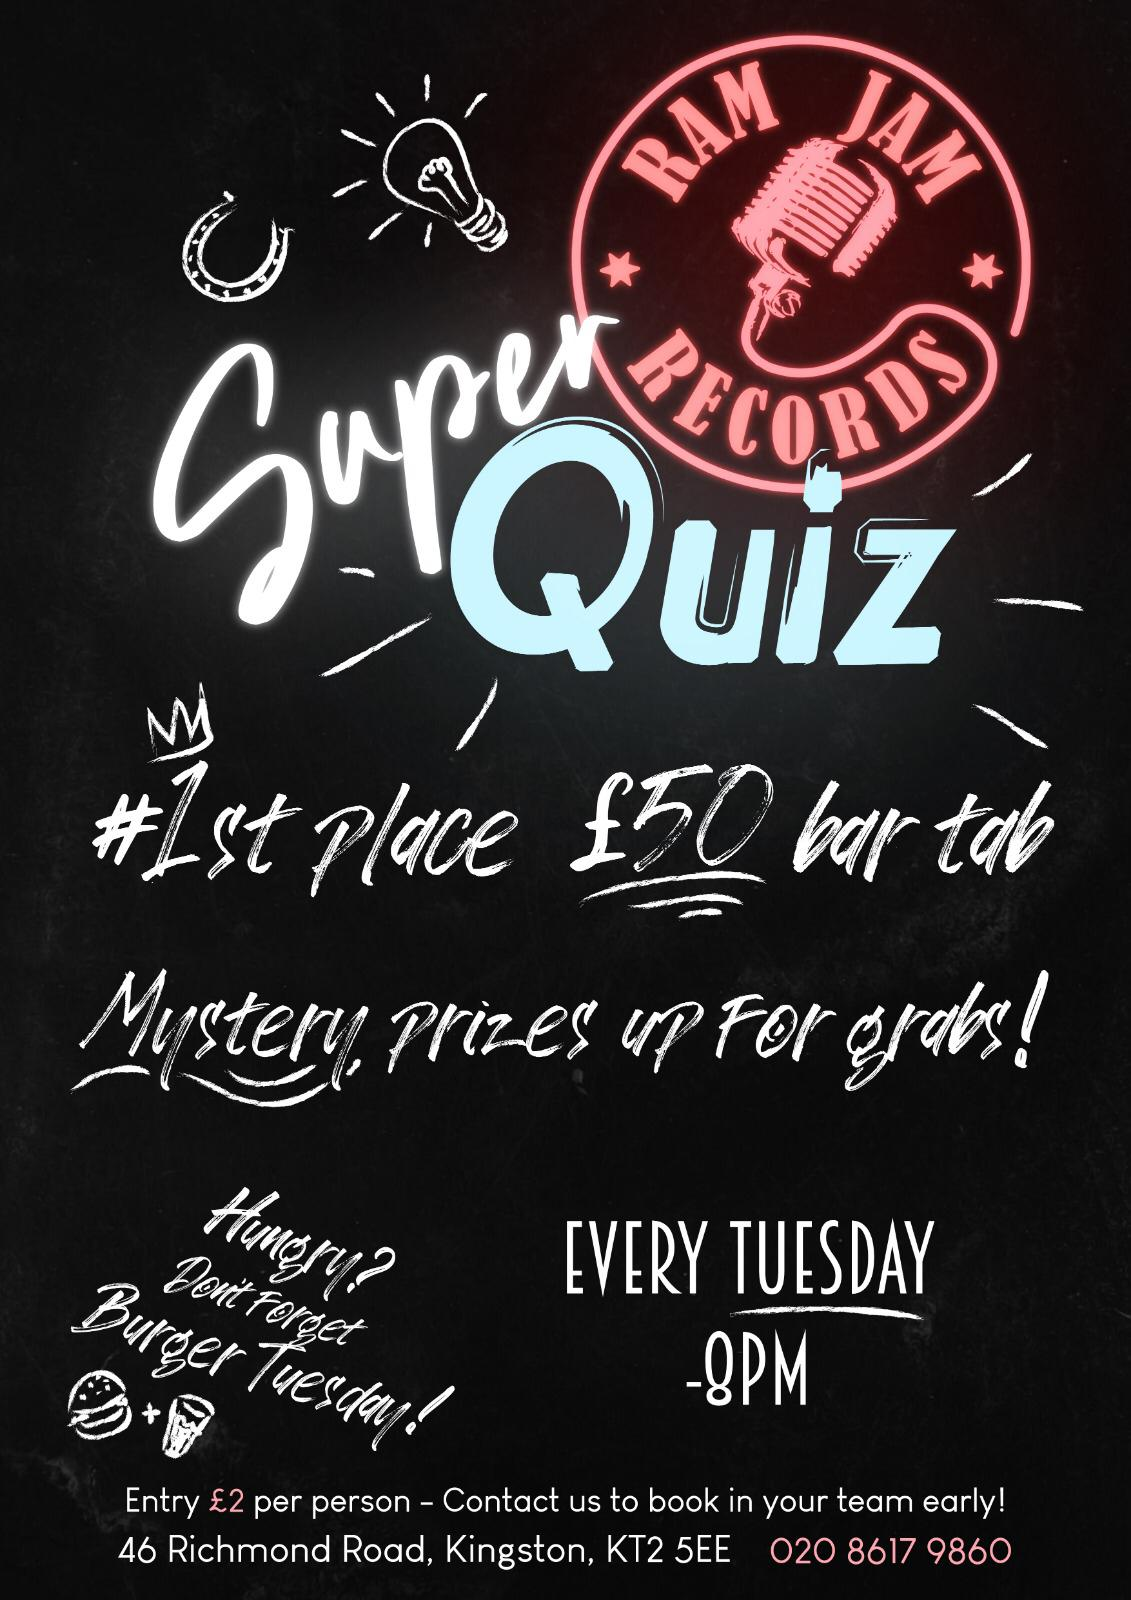 Every Tuesday from 8pm join us at RJR for a super quiz with a £50 Bar tab for the winning team.